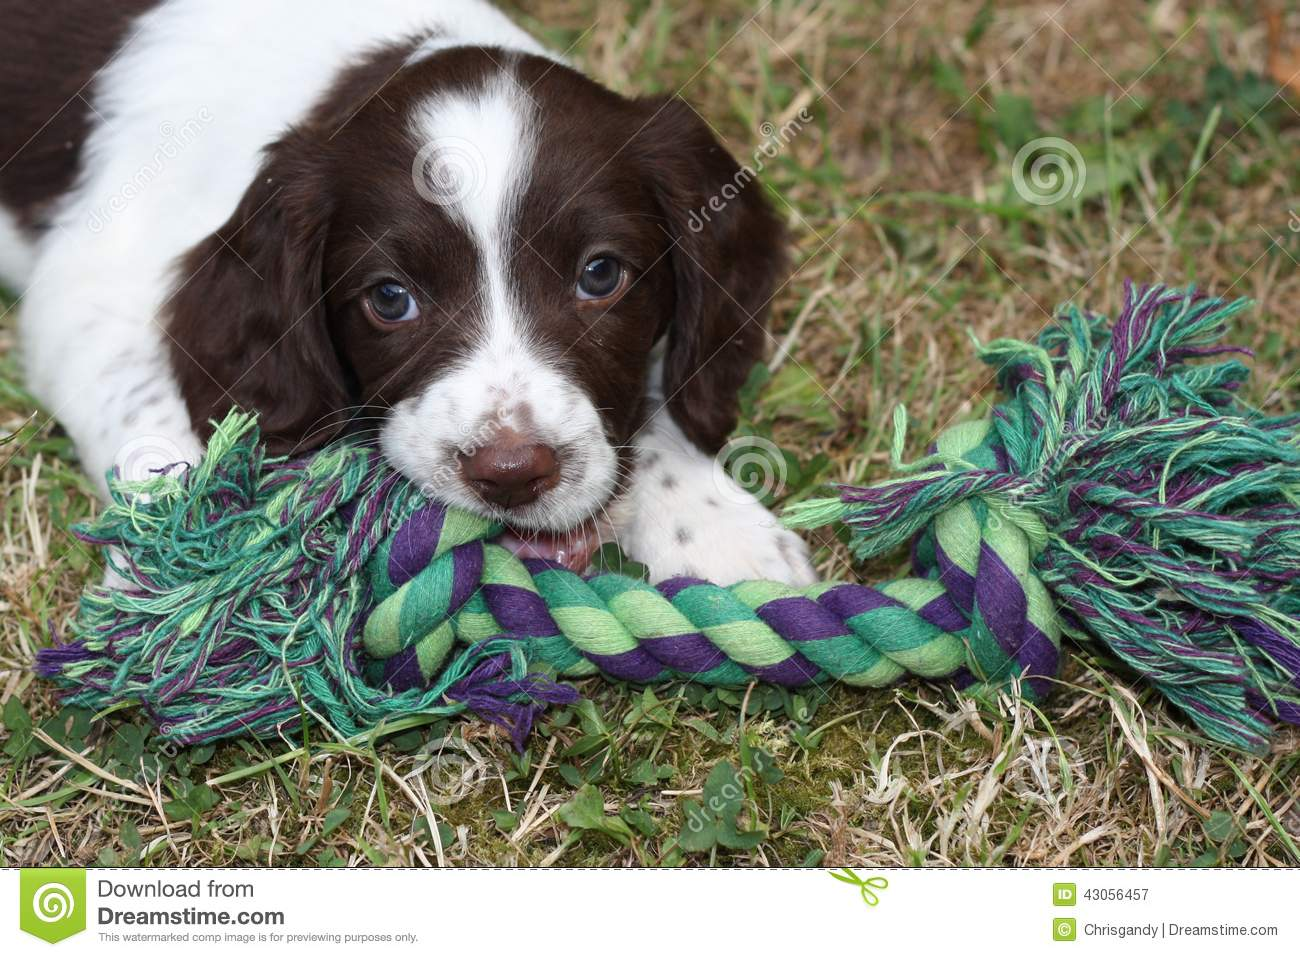 A Very Cute Young Liver And White Working Type English Springer Spaniel Pet Gundog Puppy Stock Image Image Of Working Puppy 43056457